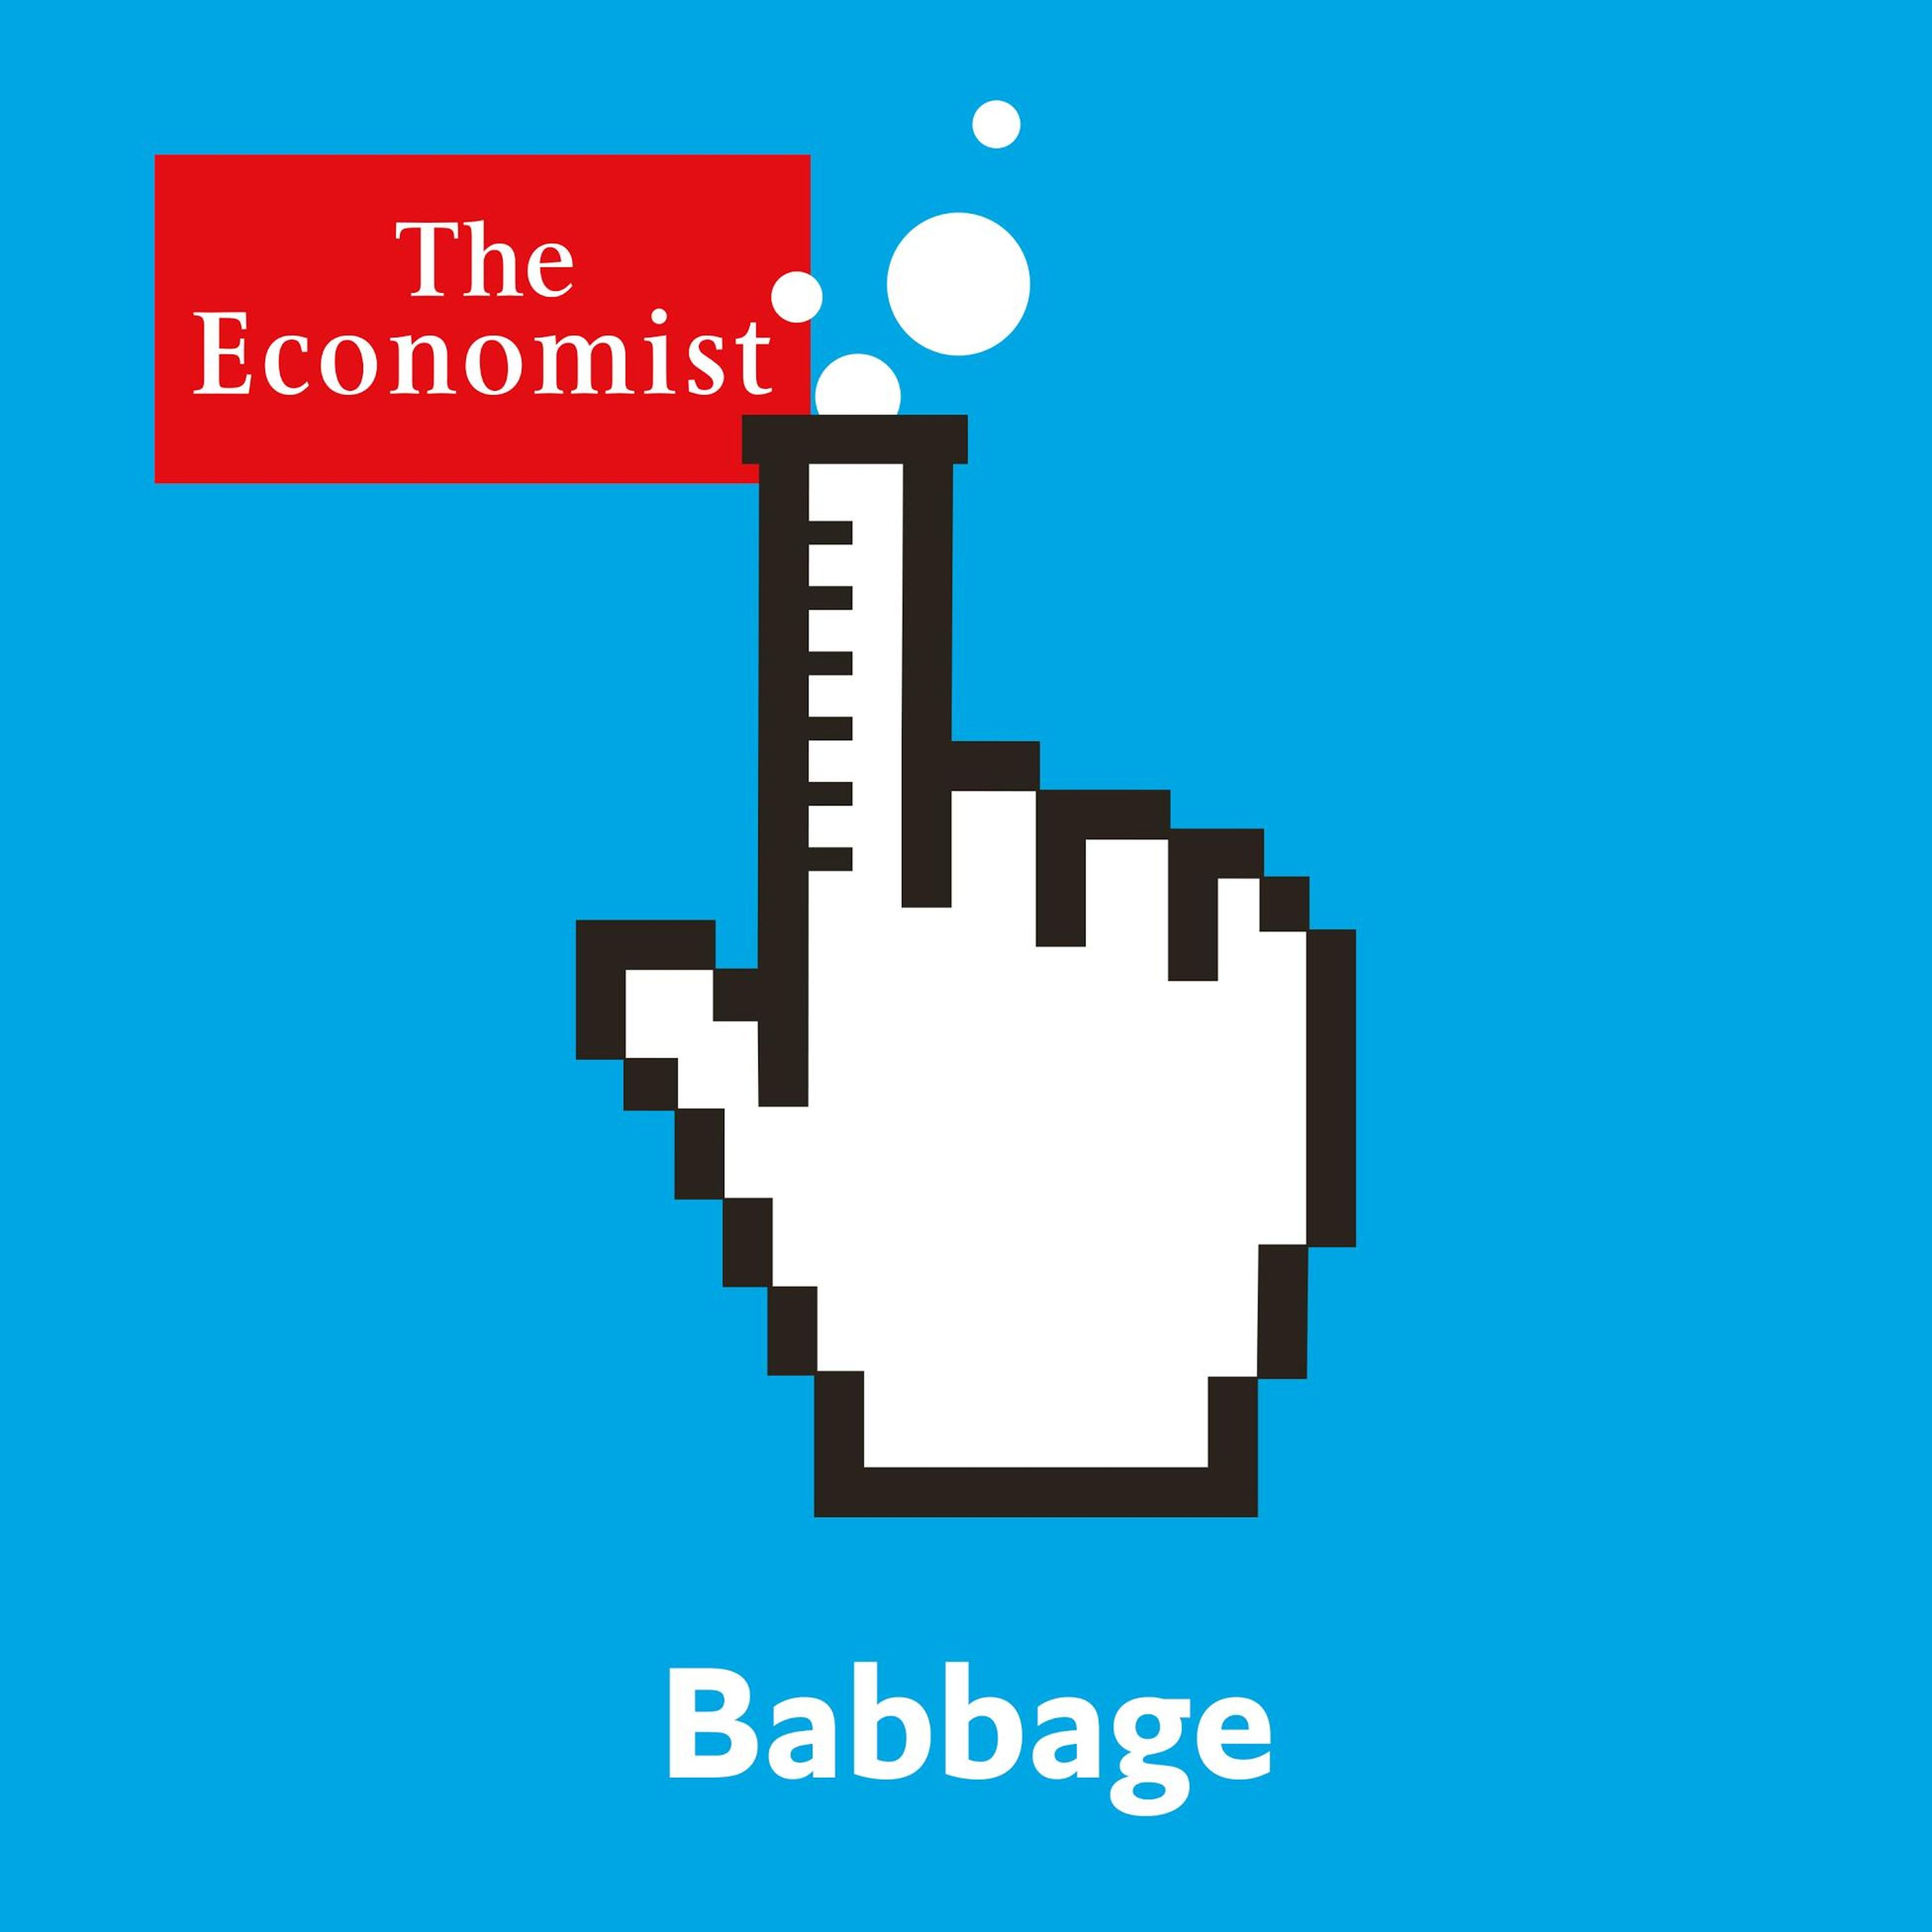 Babbage: Another dose of good news